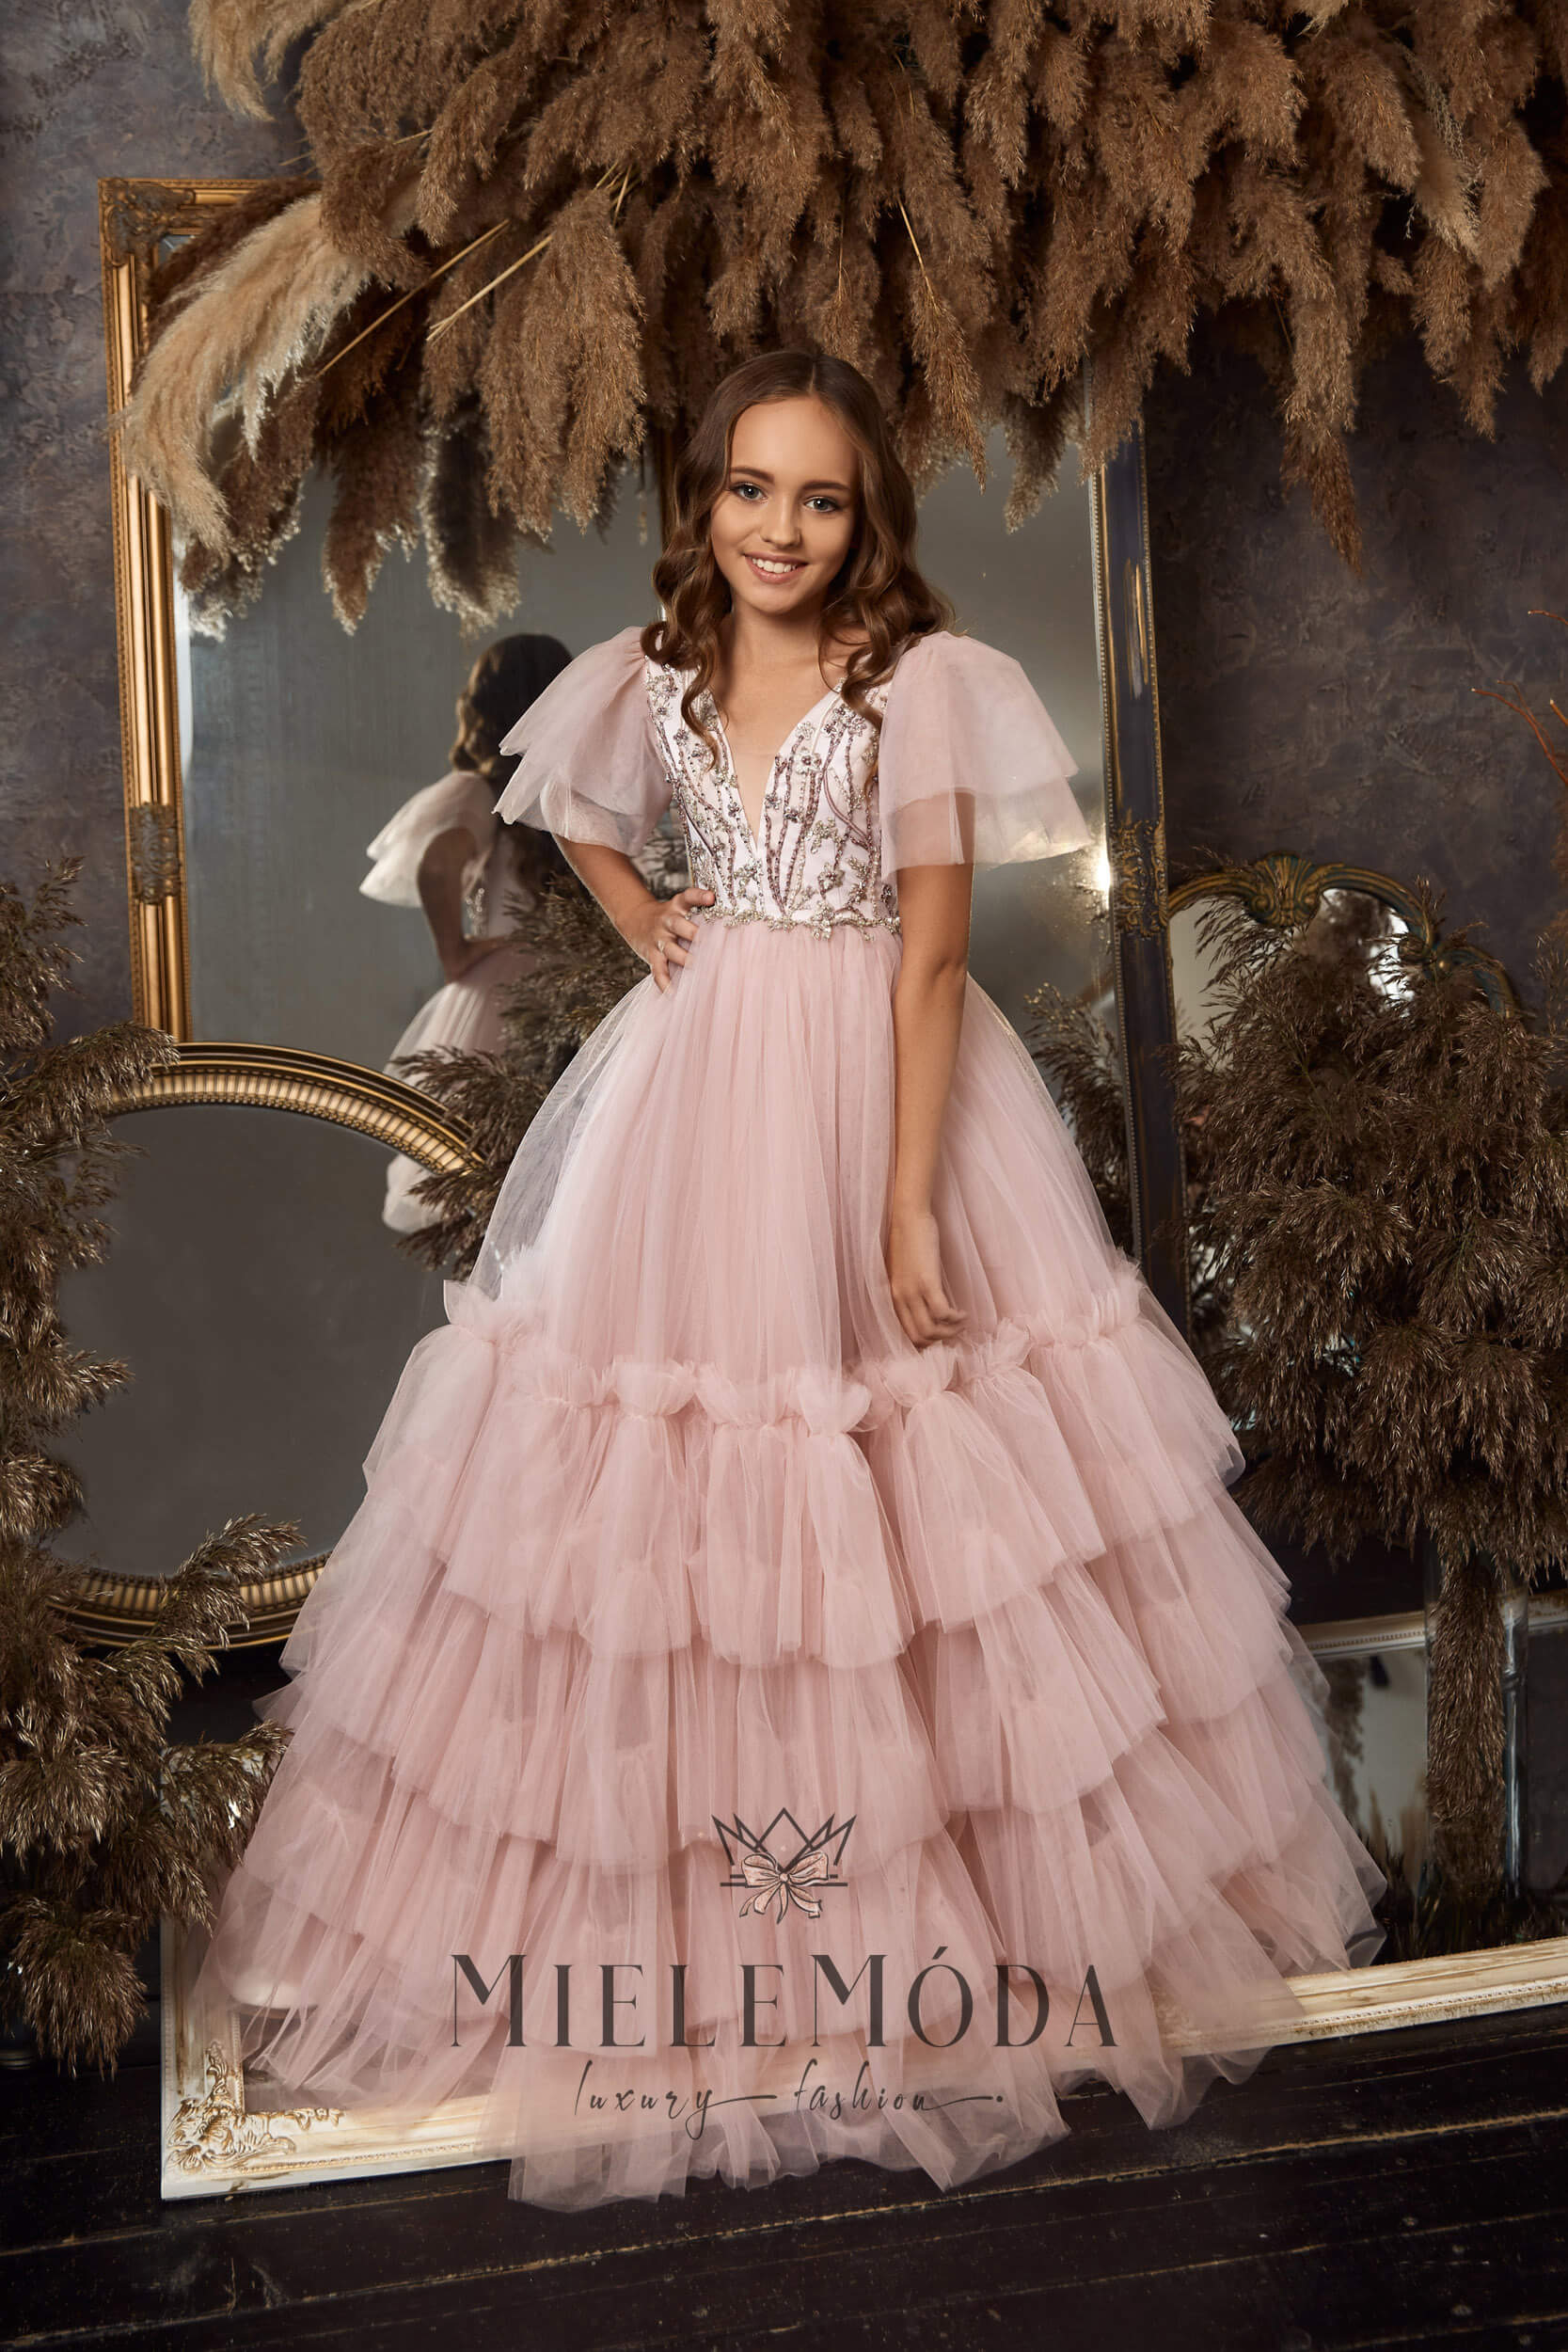 Chiara Flower Girl Princess Dress